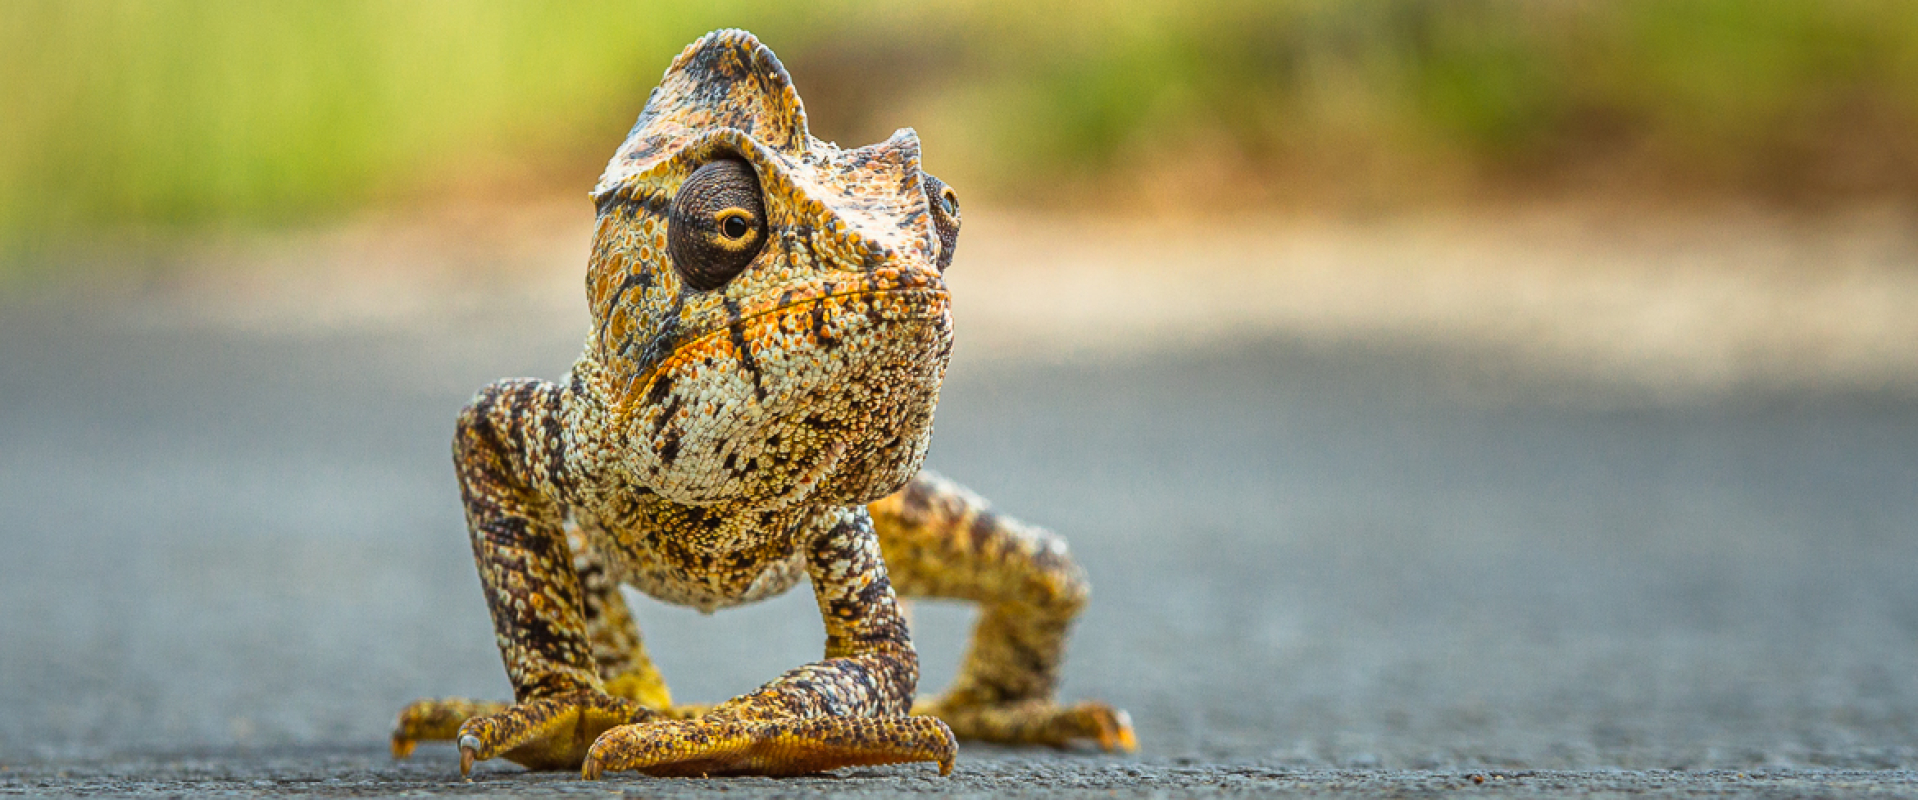 Publication in National Geographic Magazine: Crossing Chameleon